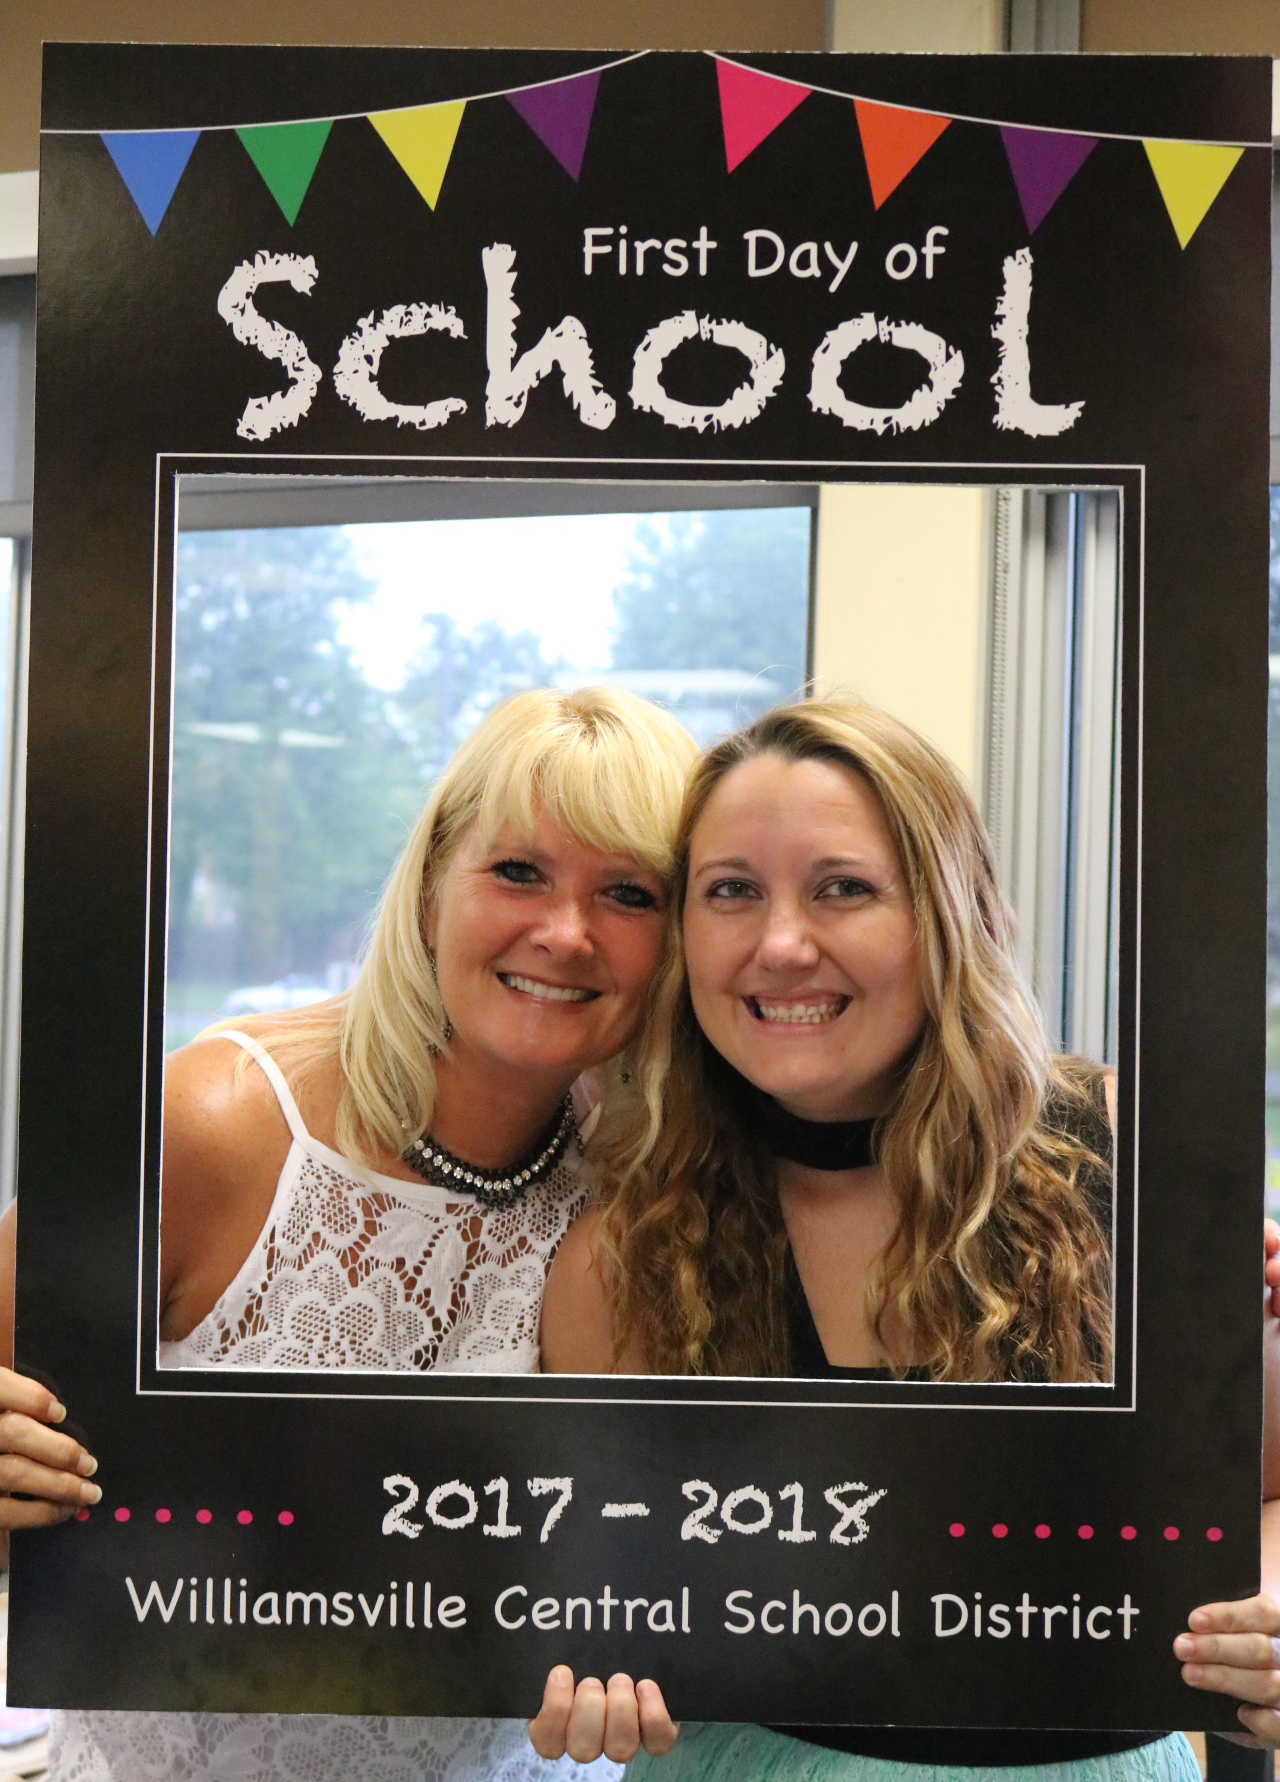 Middle school office staff hold up photo frame